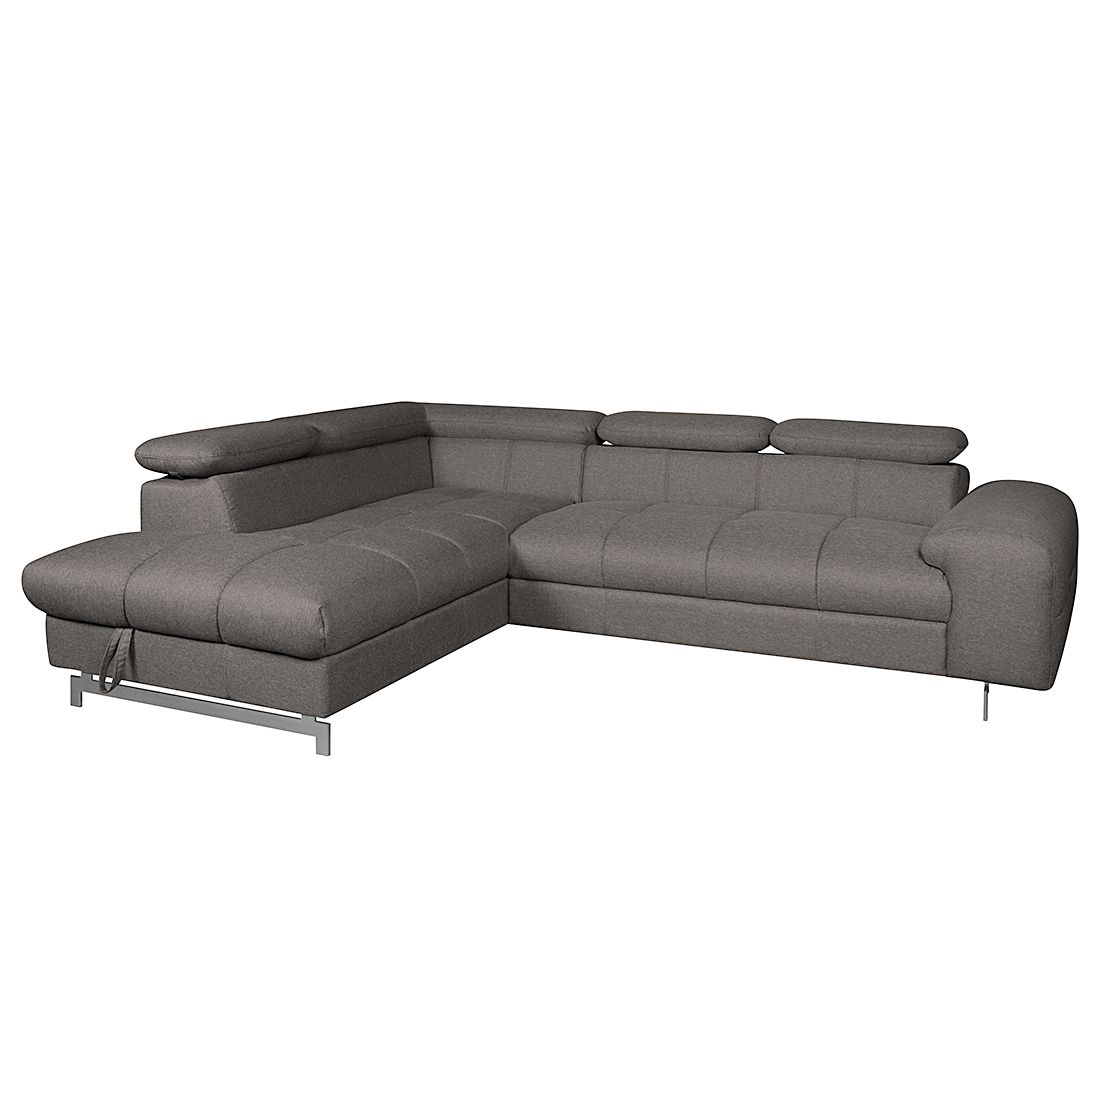 ecksofa mit schlaffunktion ikea. Black Bedroom Furniture Sets. Home Design Ideas